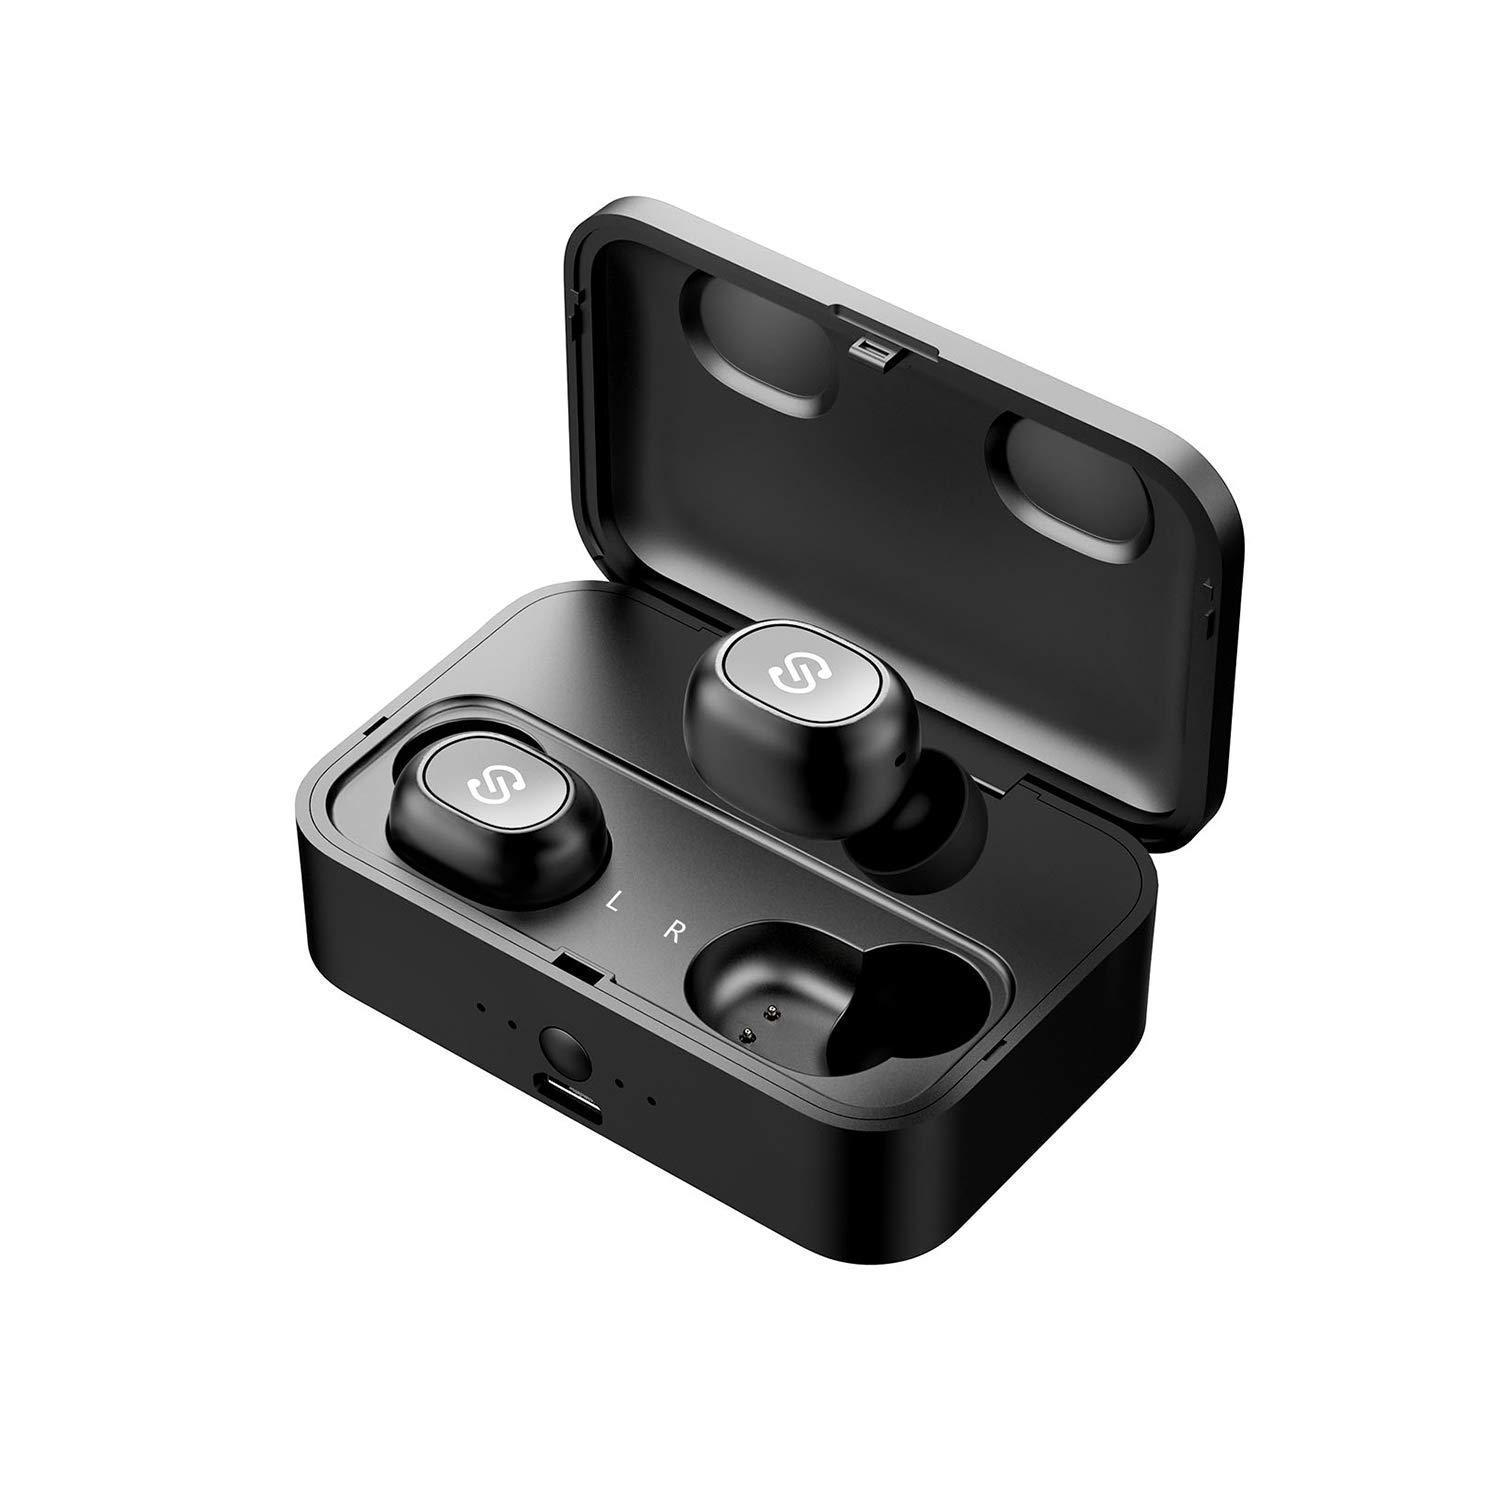 SoundPEATS True Free Pro (Pro Ed of True Free True Plus True Mini and True  Capsule) Wireless Earbuds New Pro Upgraded Bluetooth Earbuds In-Ear Stereo